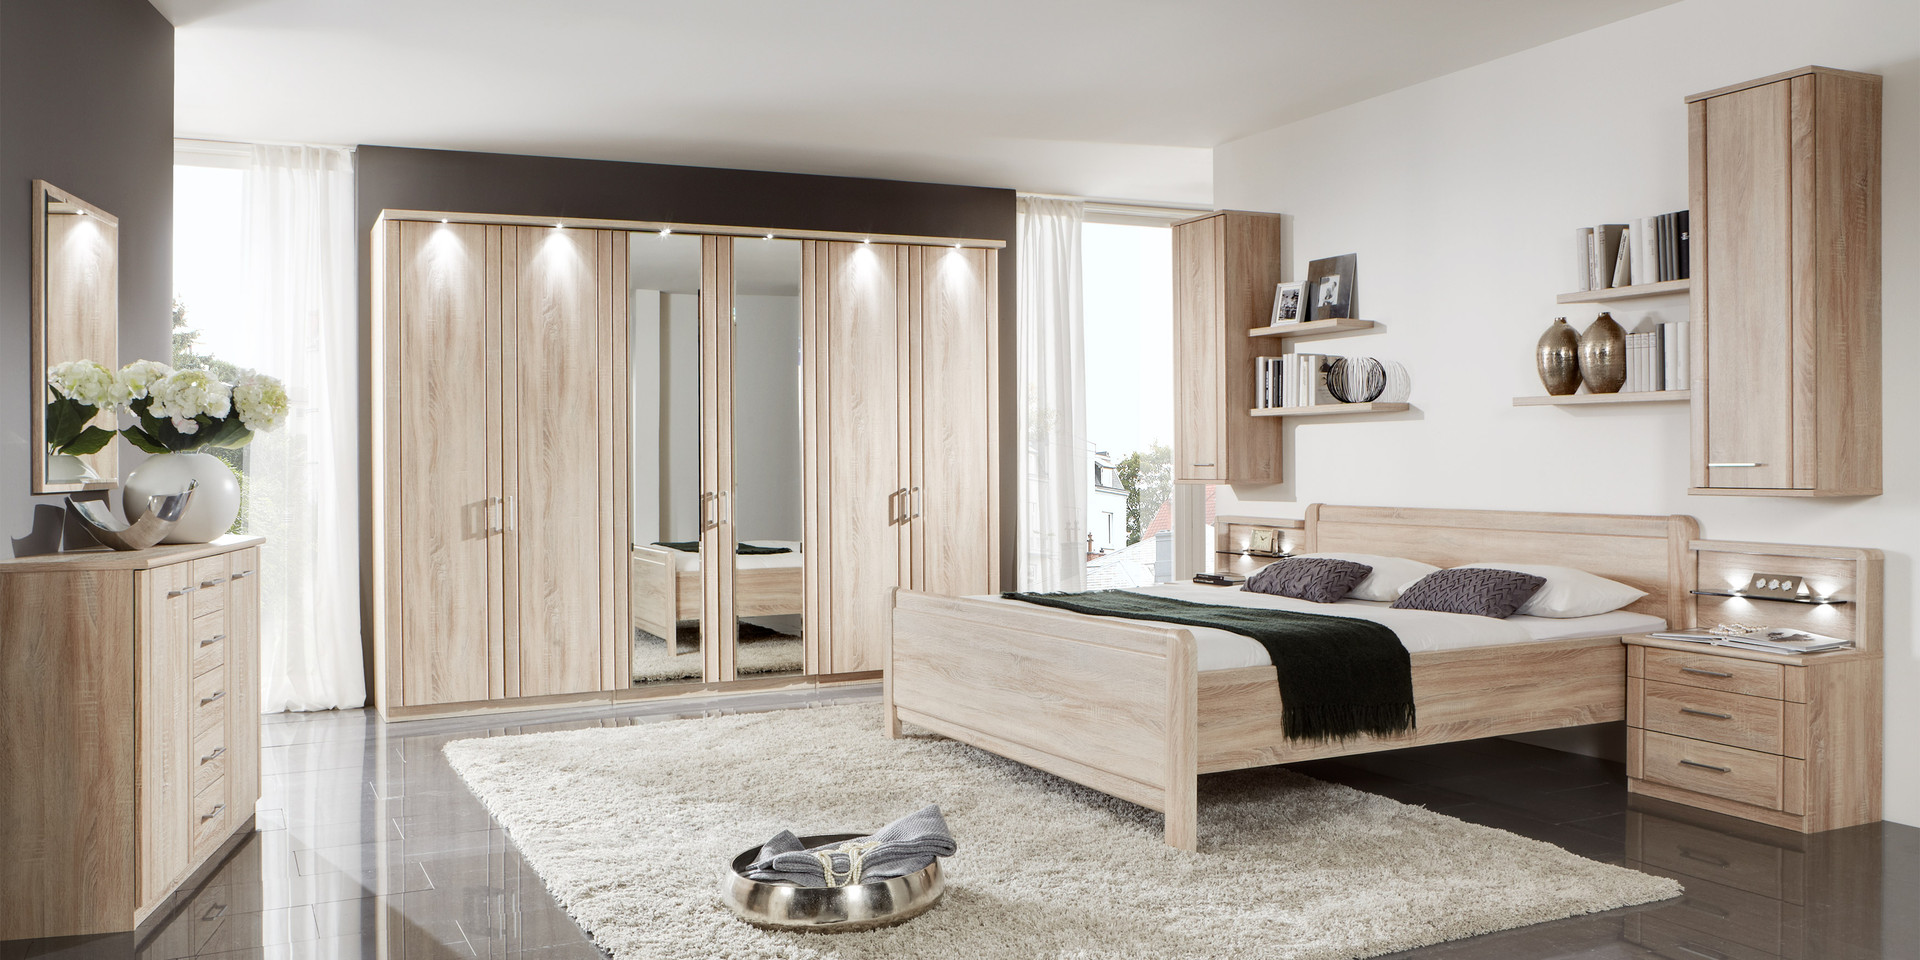 wohnzimmer wandgestaltung braun. Black Bedroom Furniture Sets. Home Design Ideas